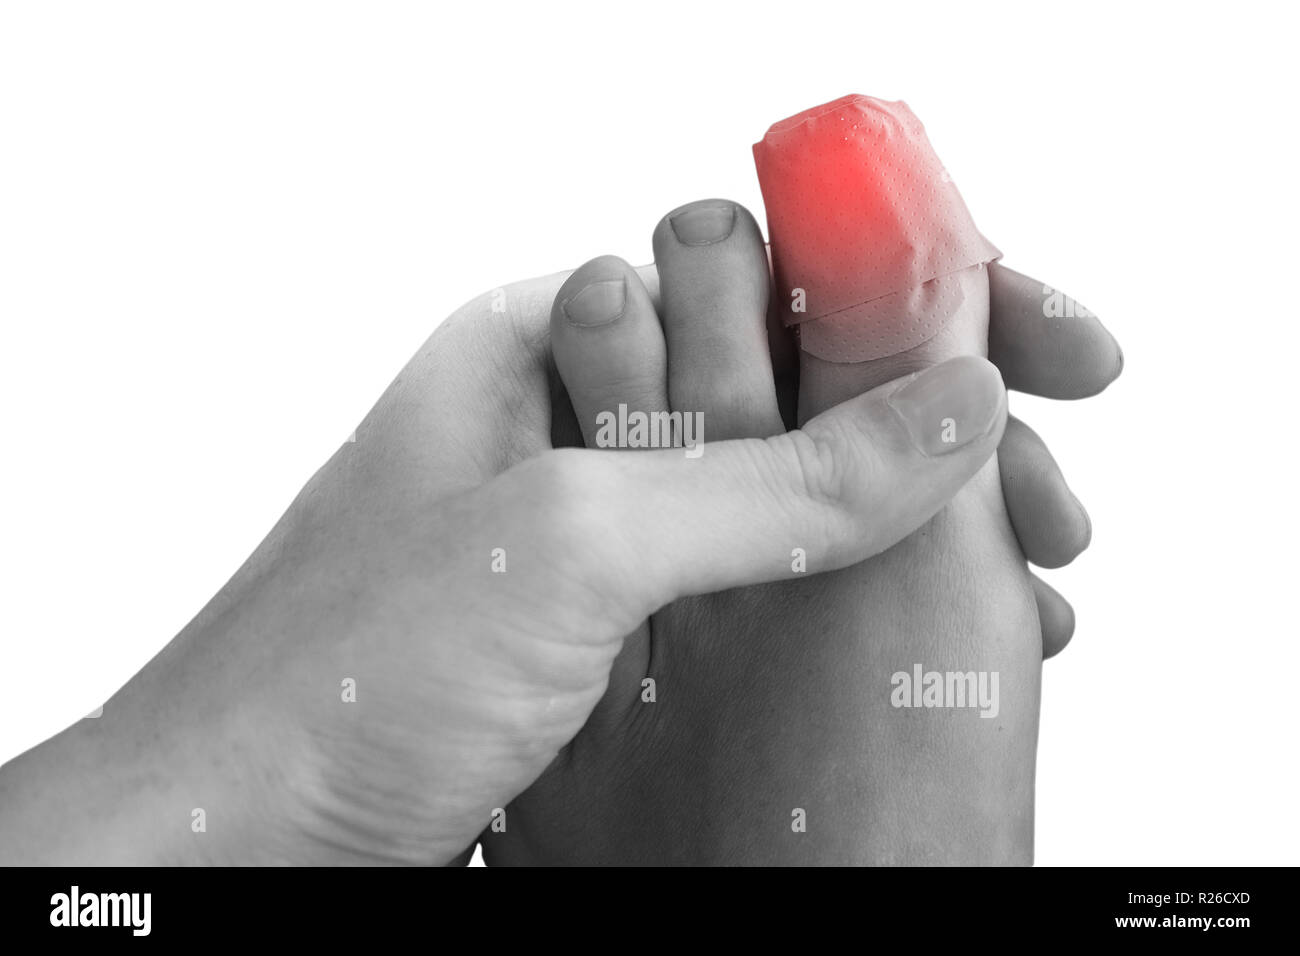 Hurt Toe with Band Plaster Aid Pain Concept - Stock Image